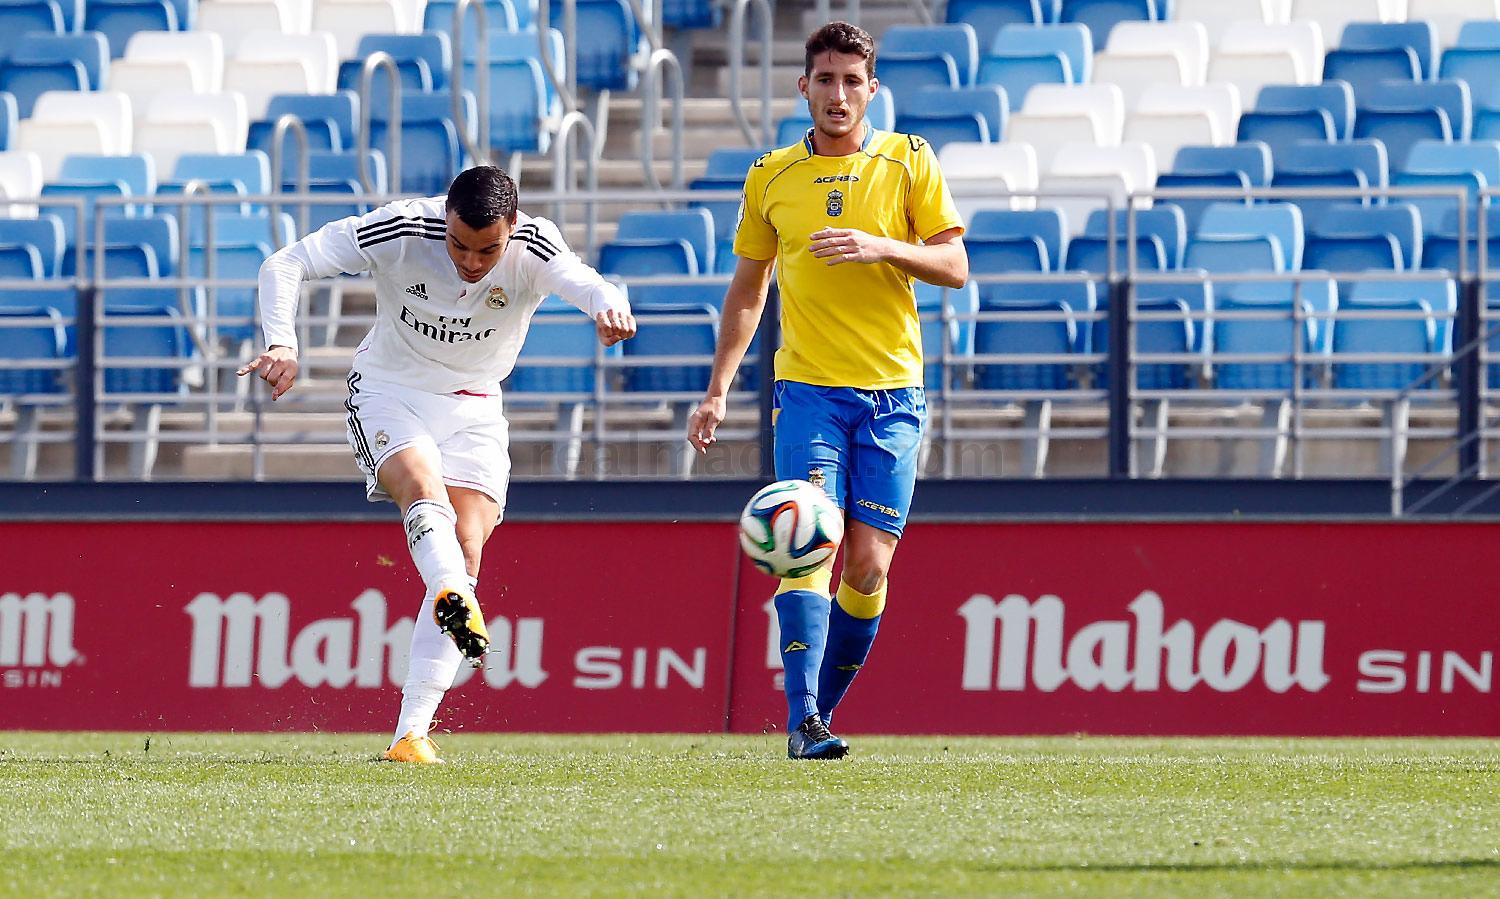 Real Madrid - Real Madrid Castilla - Las Palmas Atlético - 29-03-2015